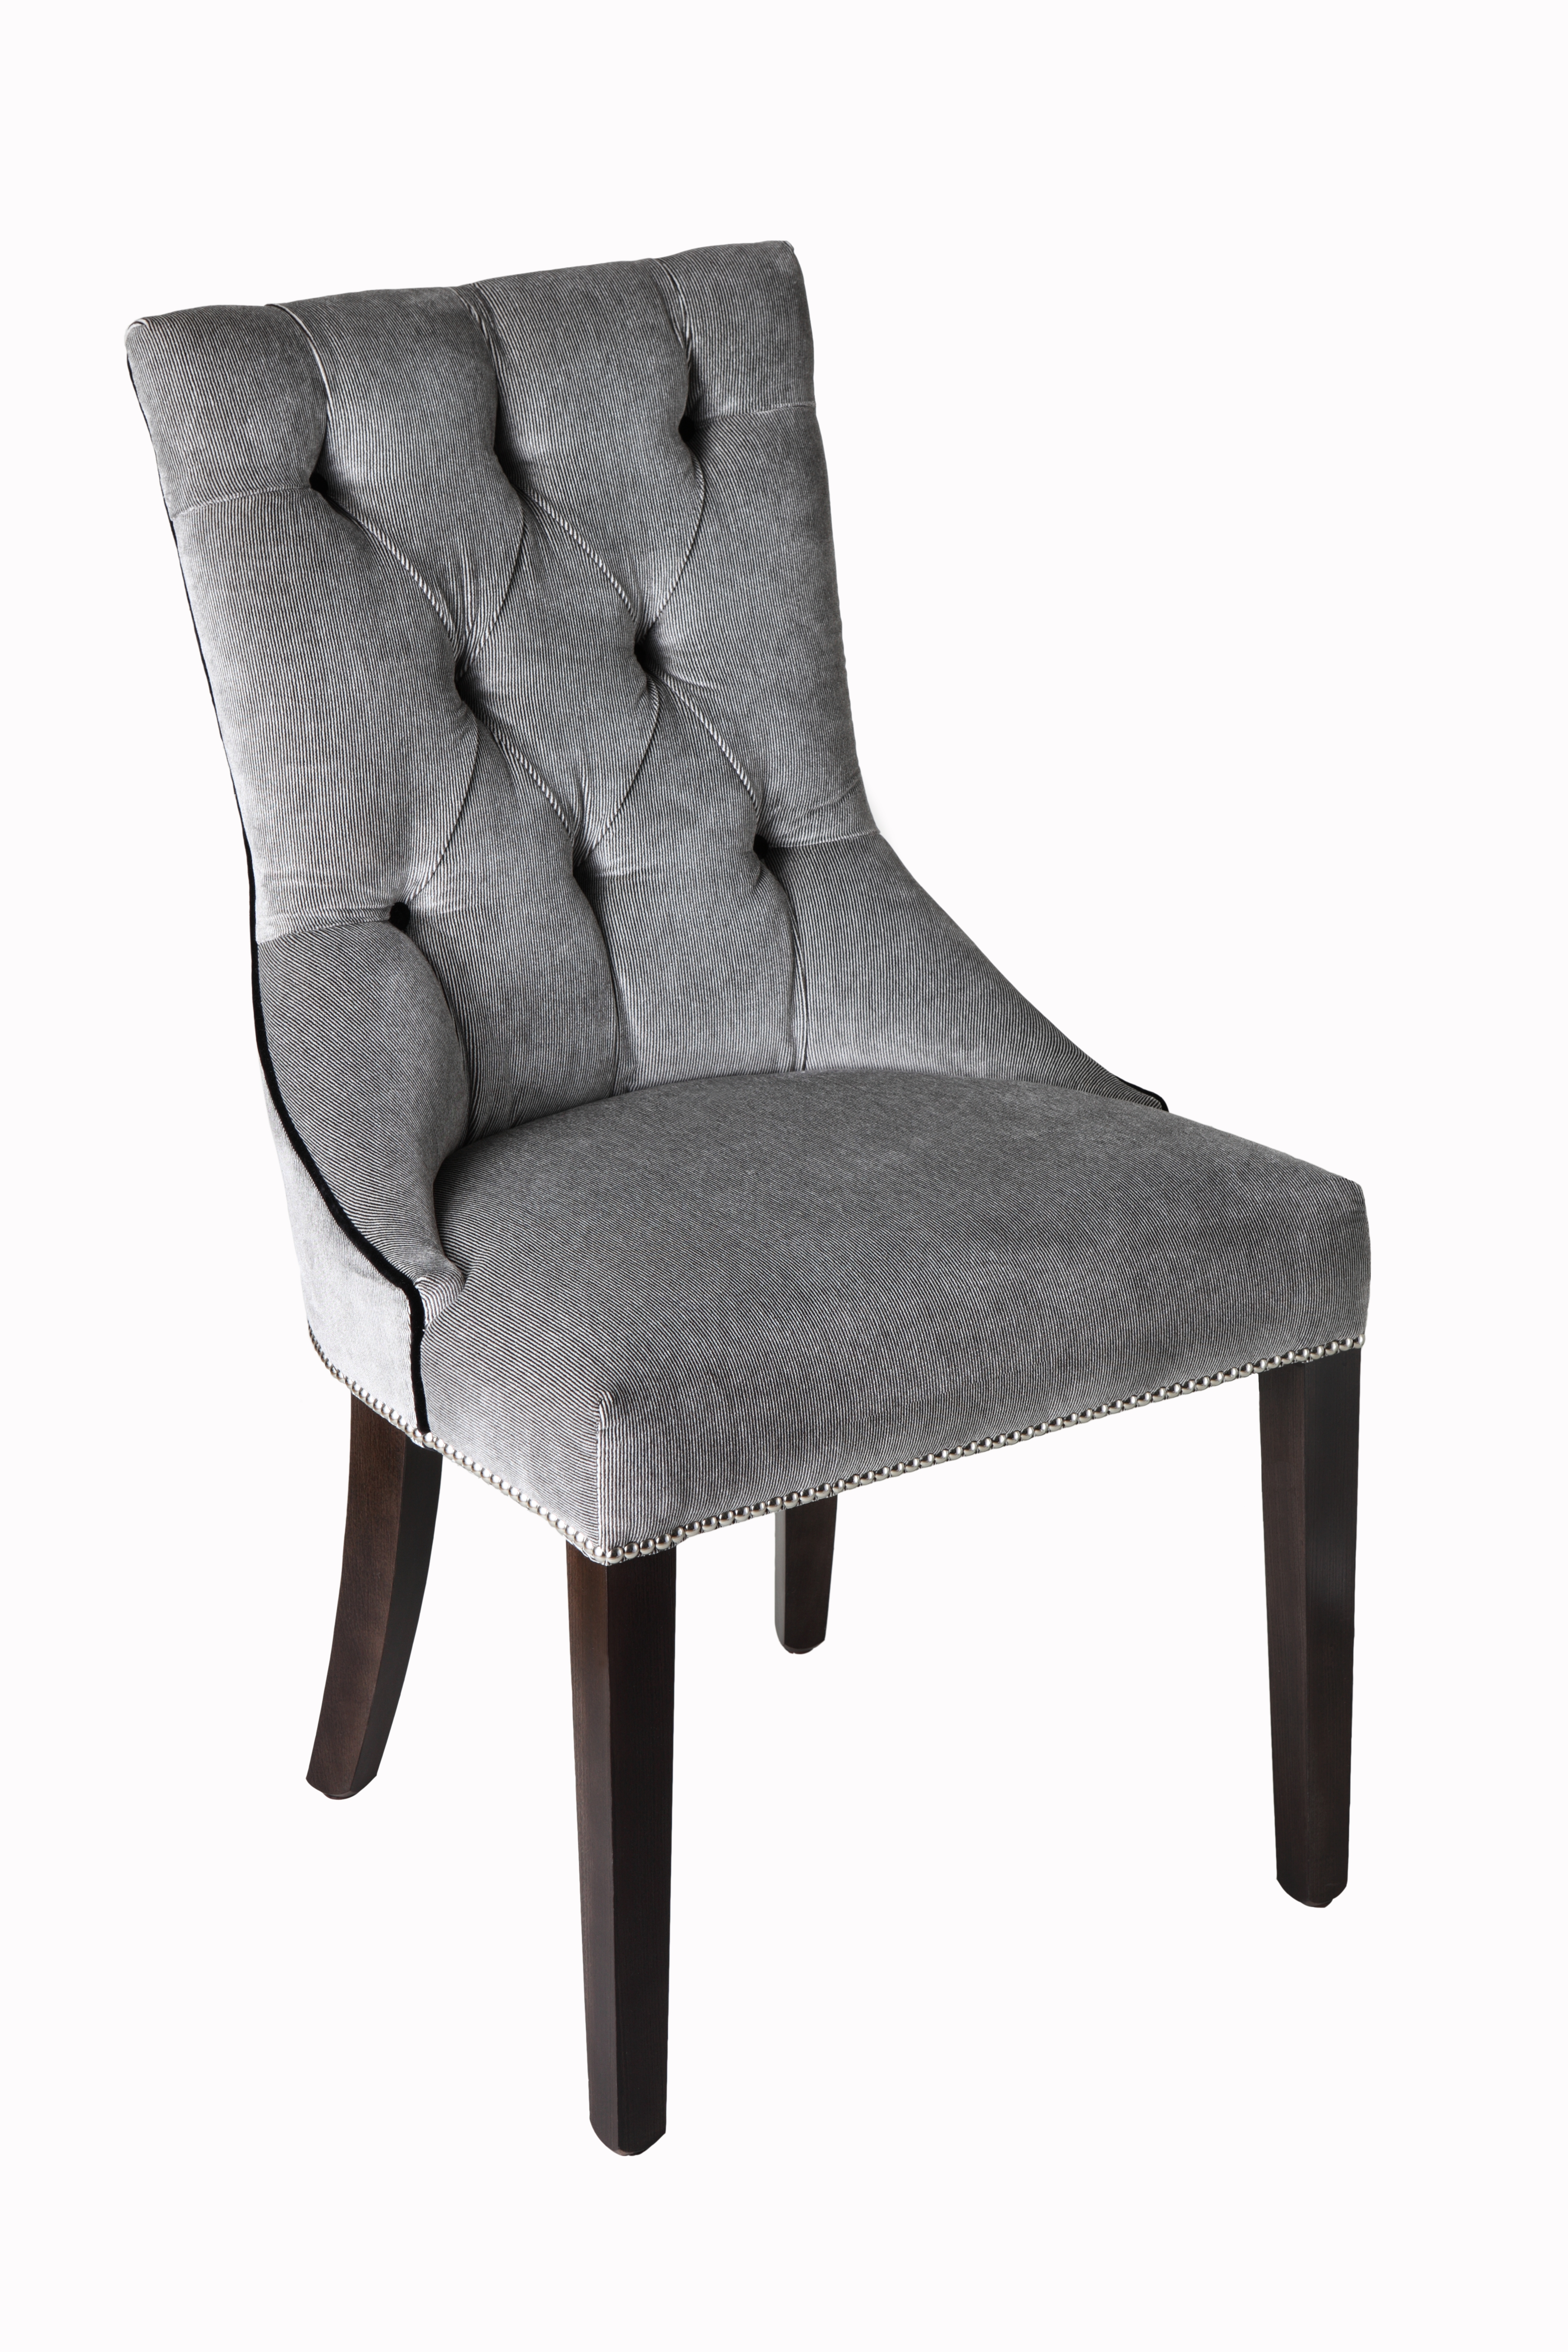 upholstered dining chairs charles upholstered dining chair RAYITXH